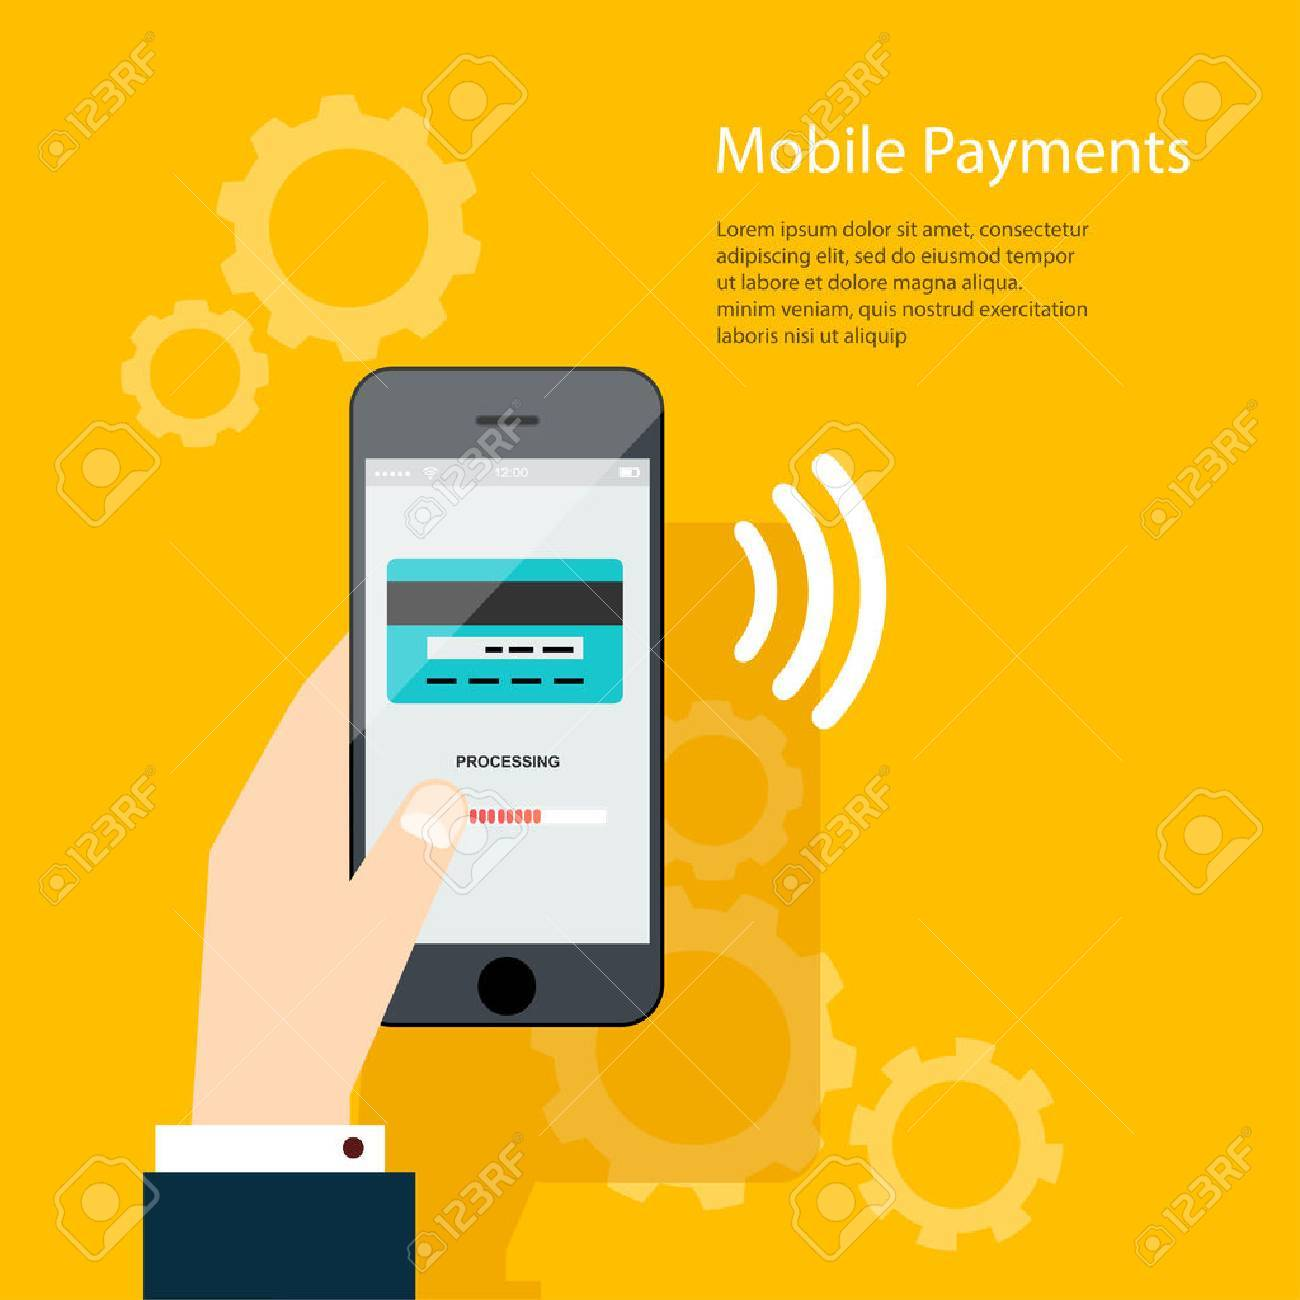 Mobile Payments. Man holding phone. Vector illustration of modern smartphone with processing of mobile payments from credit card on the screen. - 44490430